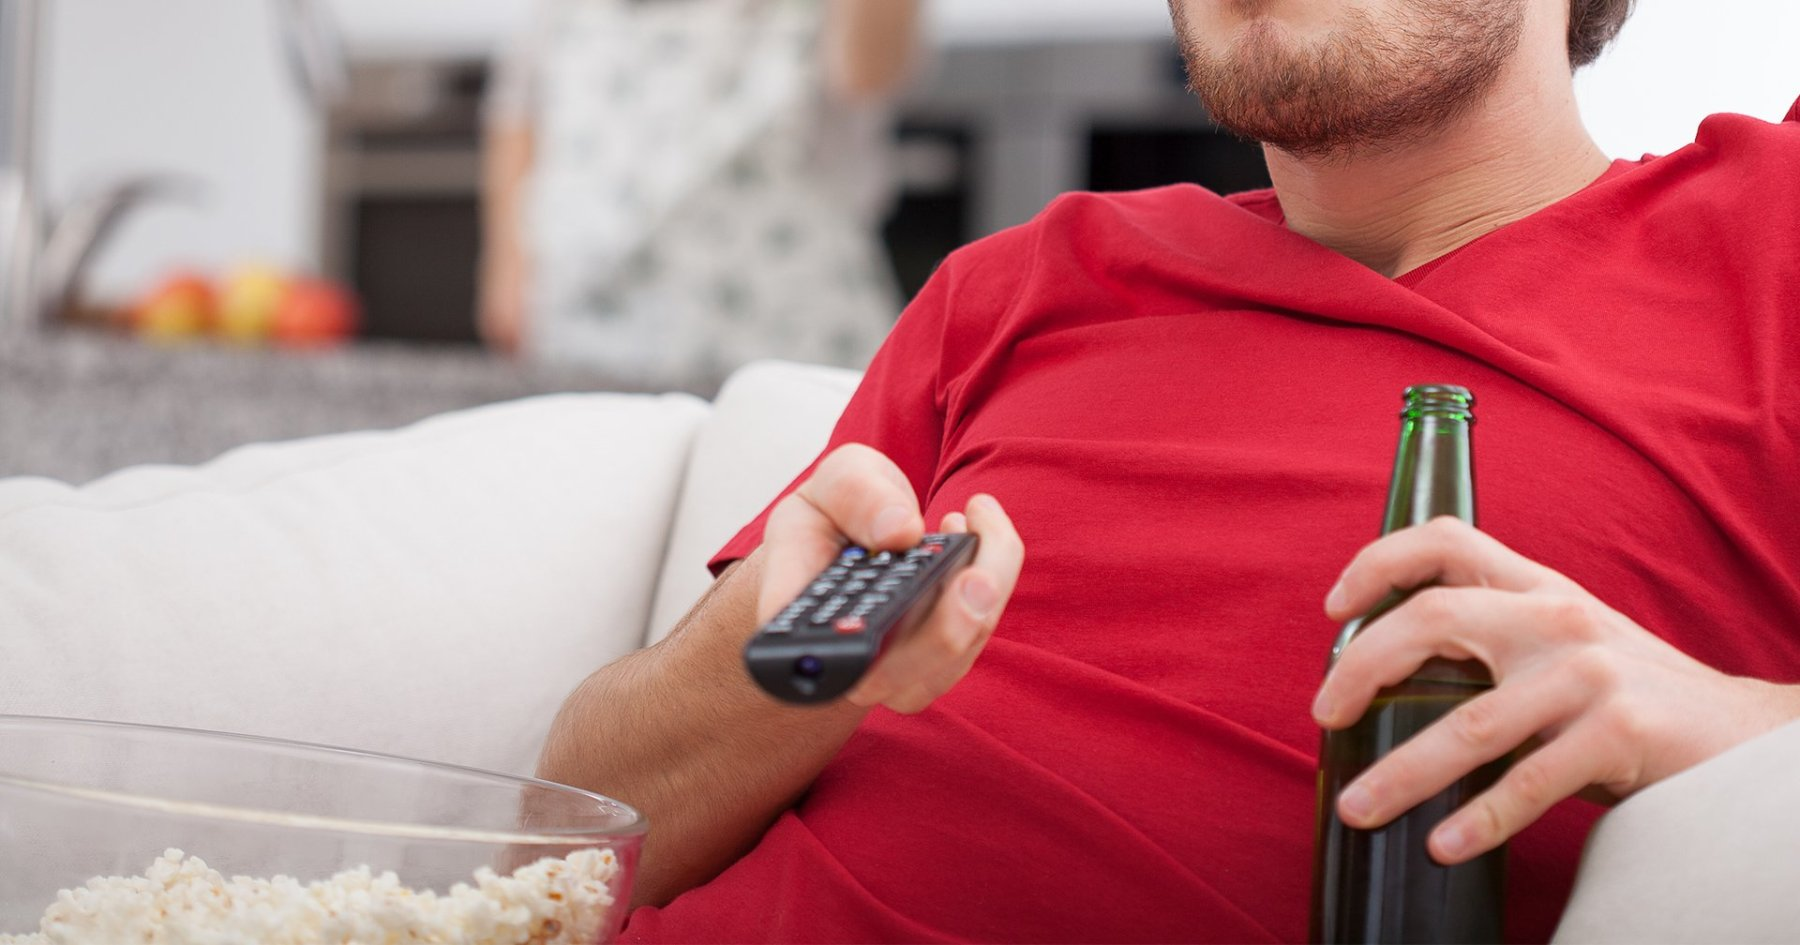 Six Highly Questionable Inventions for the Irrevocably Lazy